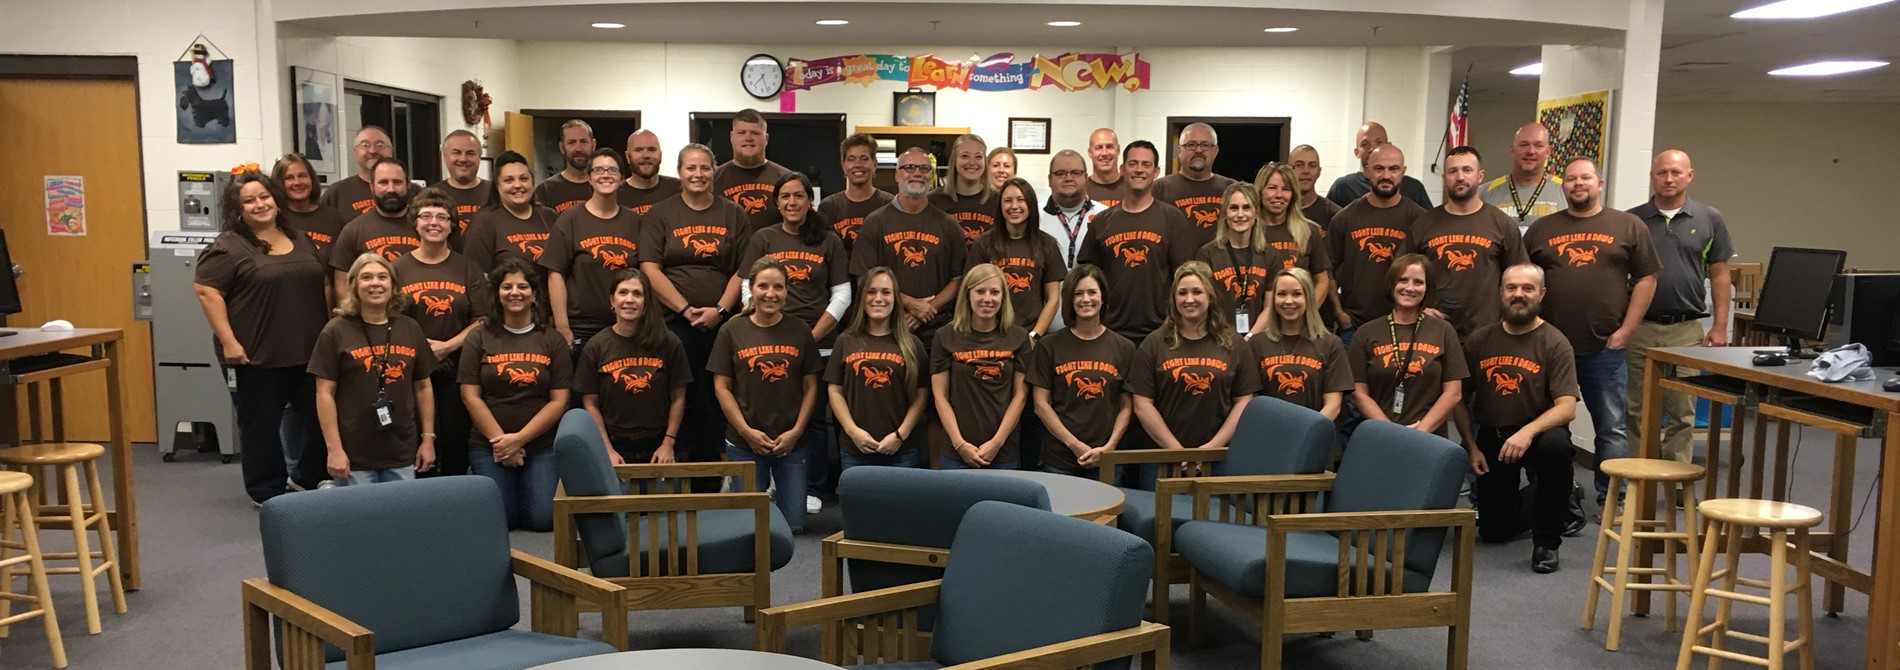 Staff showing support for Mr. Merce